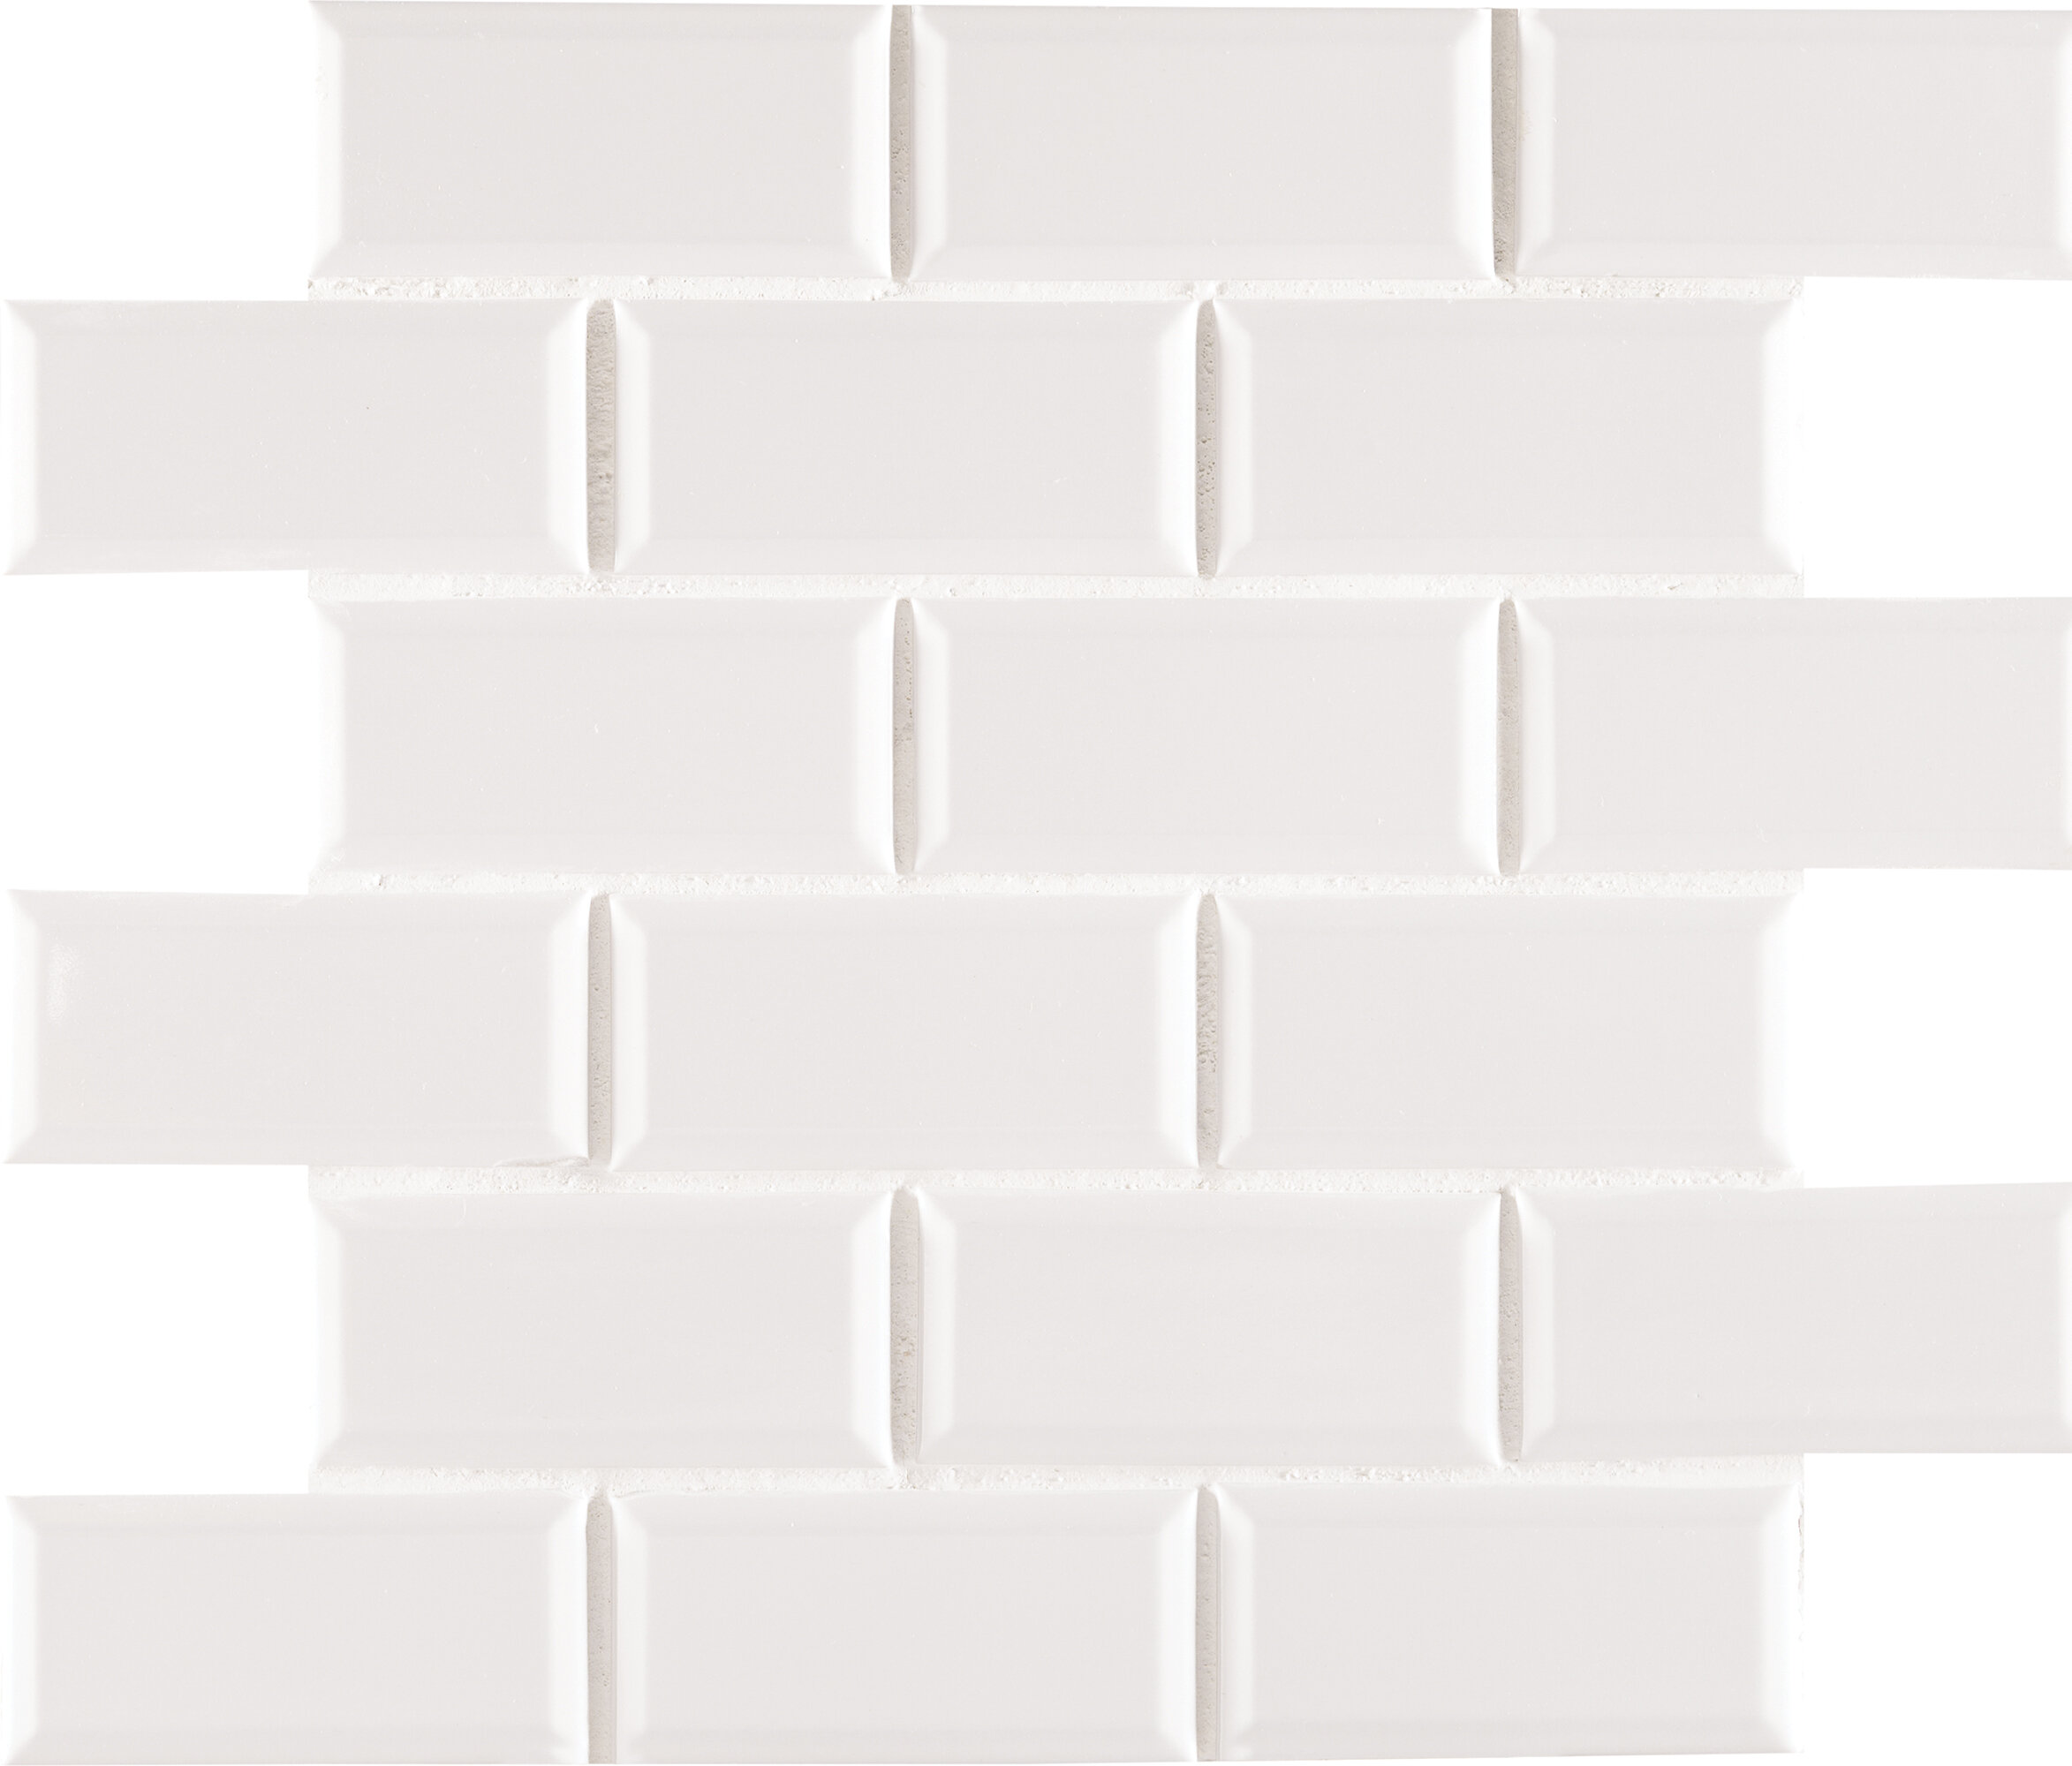 Msi staggered beveled 2 x 4 porcelain subway tile in white msi staggered beveled 2 x 4 porcelain subway tile in white reviews wayfair dailygadgetfo Gallery